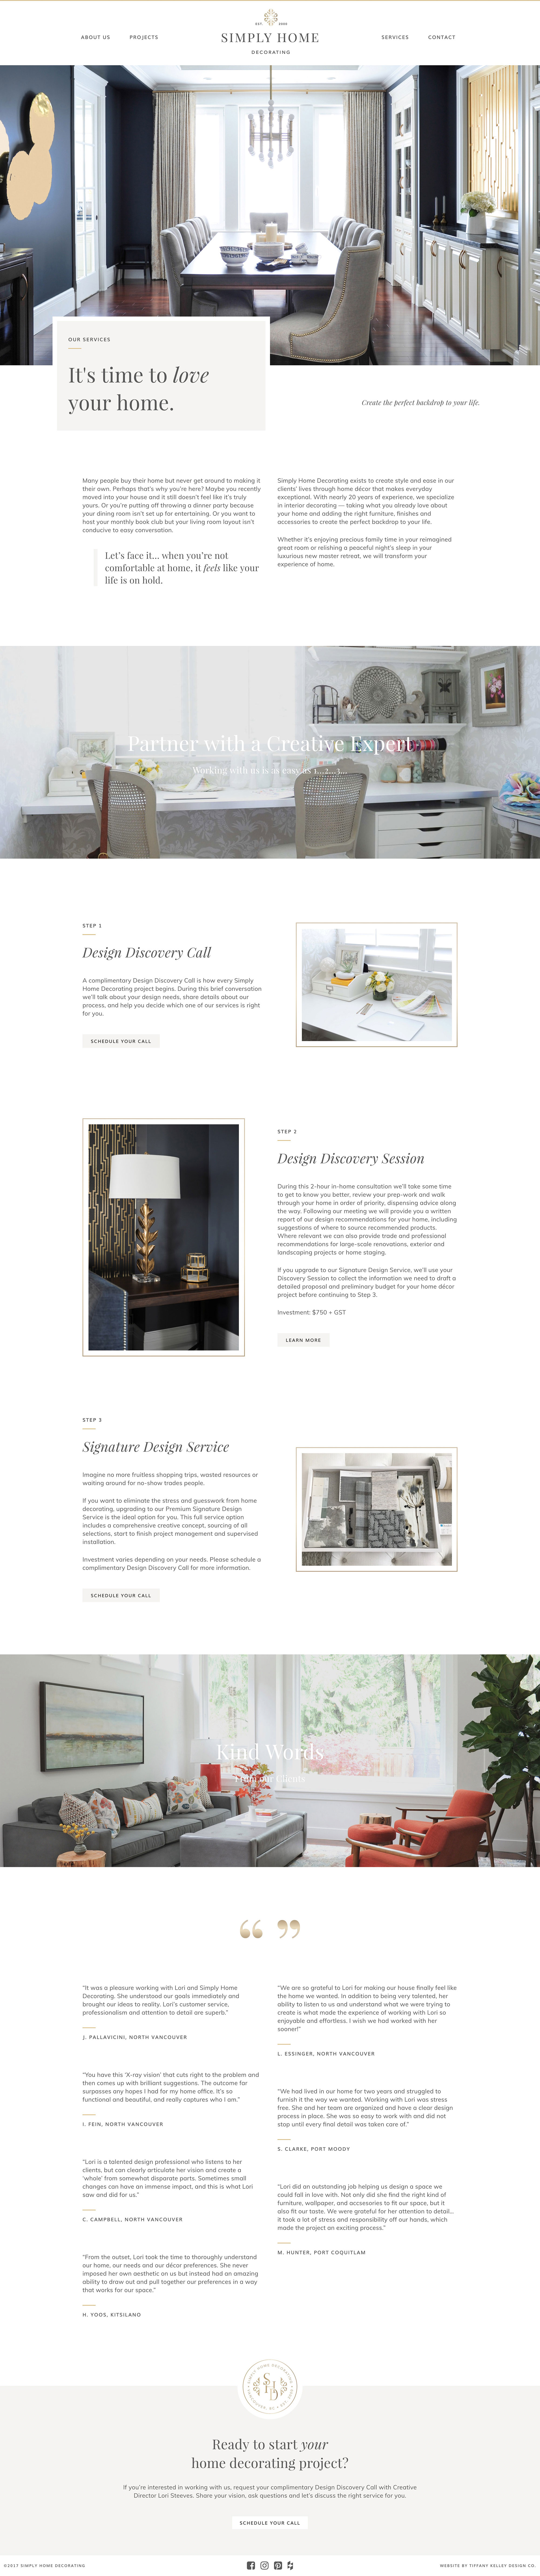 services web design simply home decorating